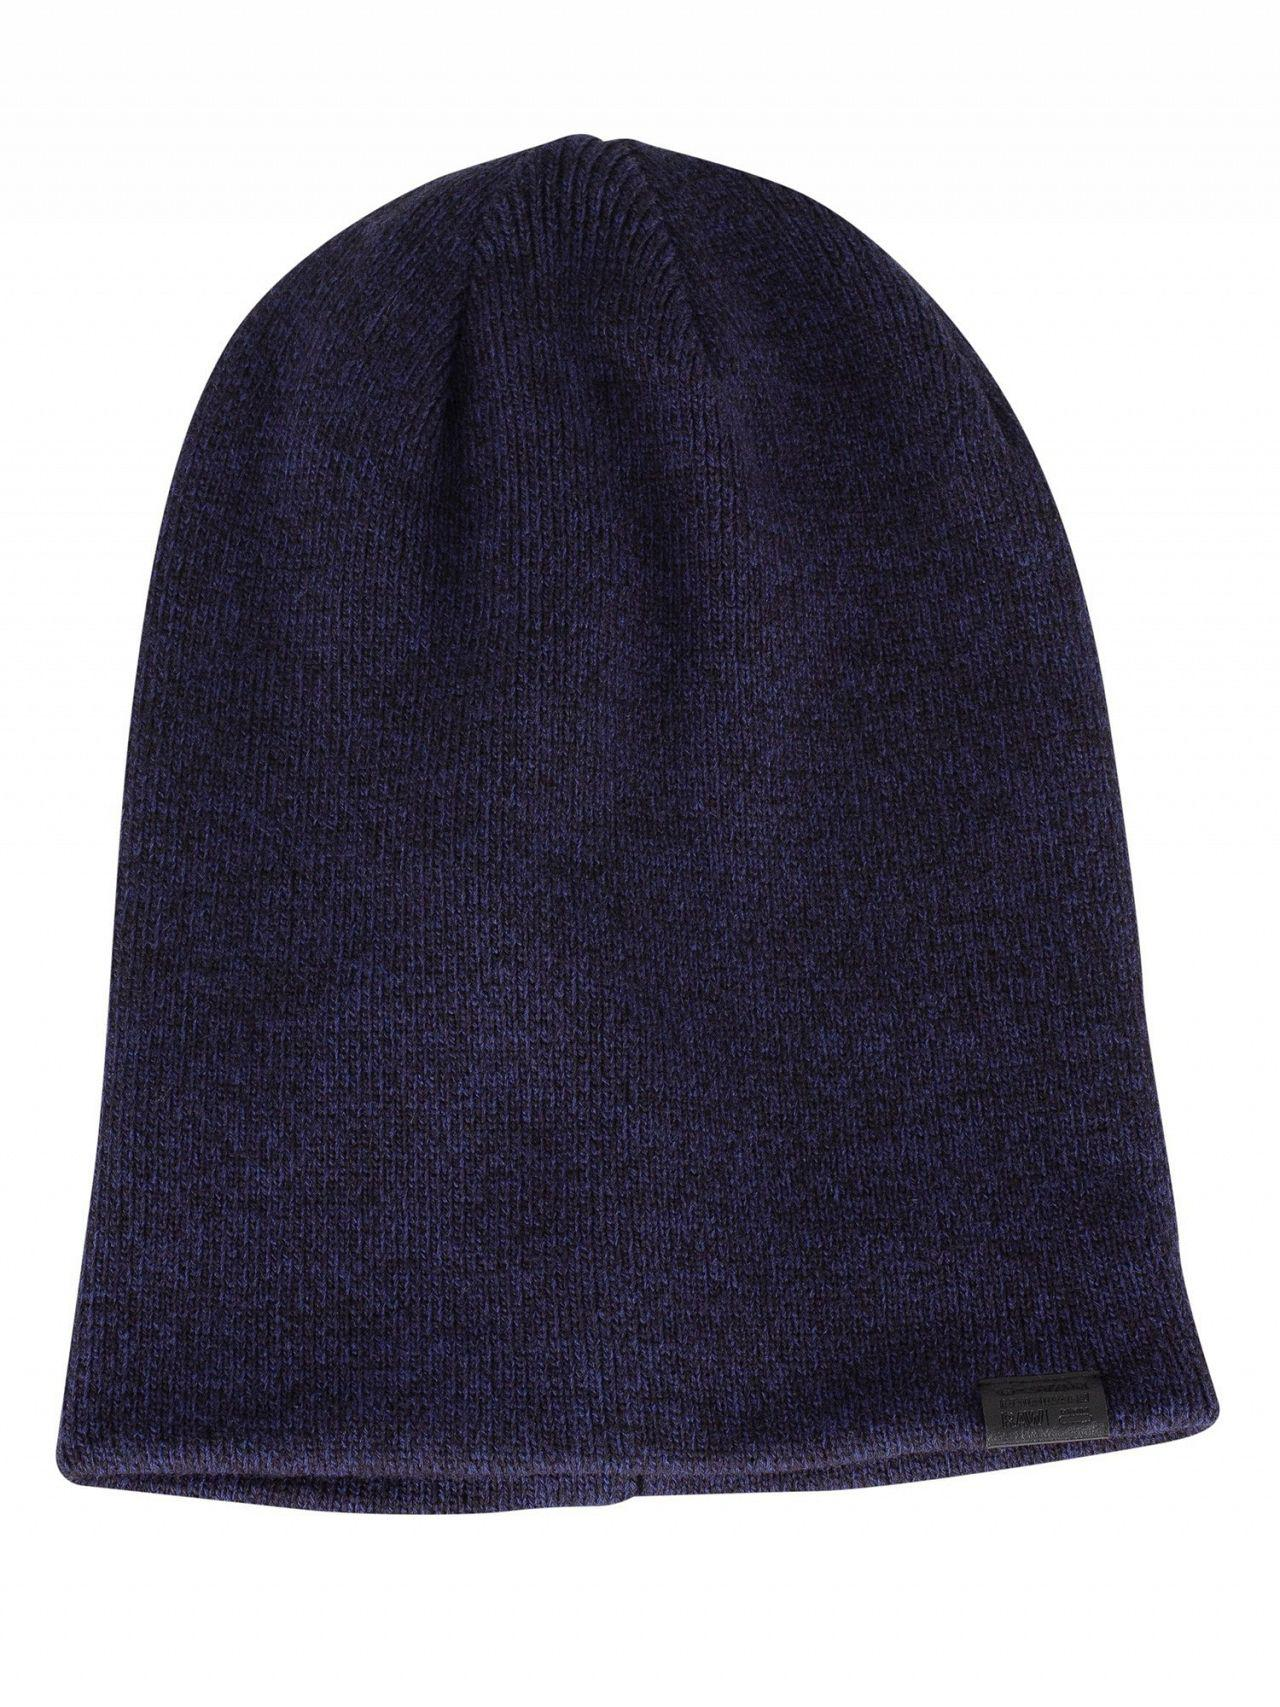 Lyst - G-Star Raw Dark Blue imperial Blue Effo Long Beanie in Blue ... f6604eee7723